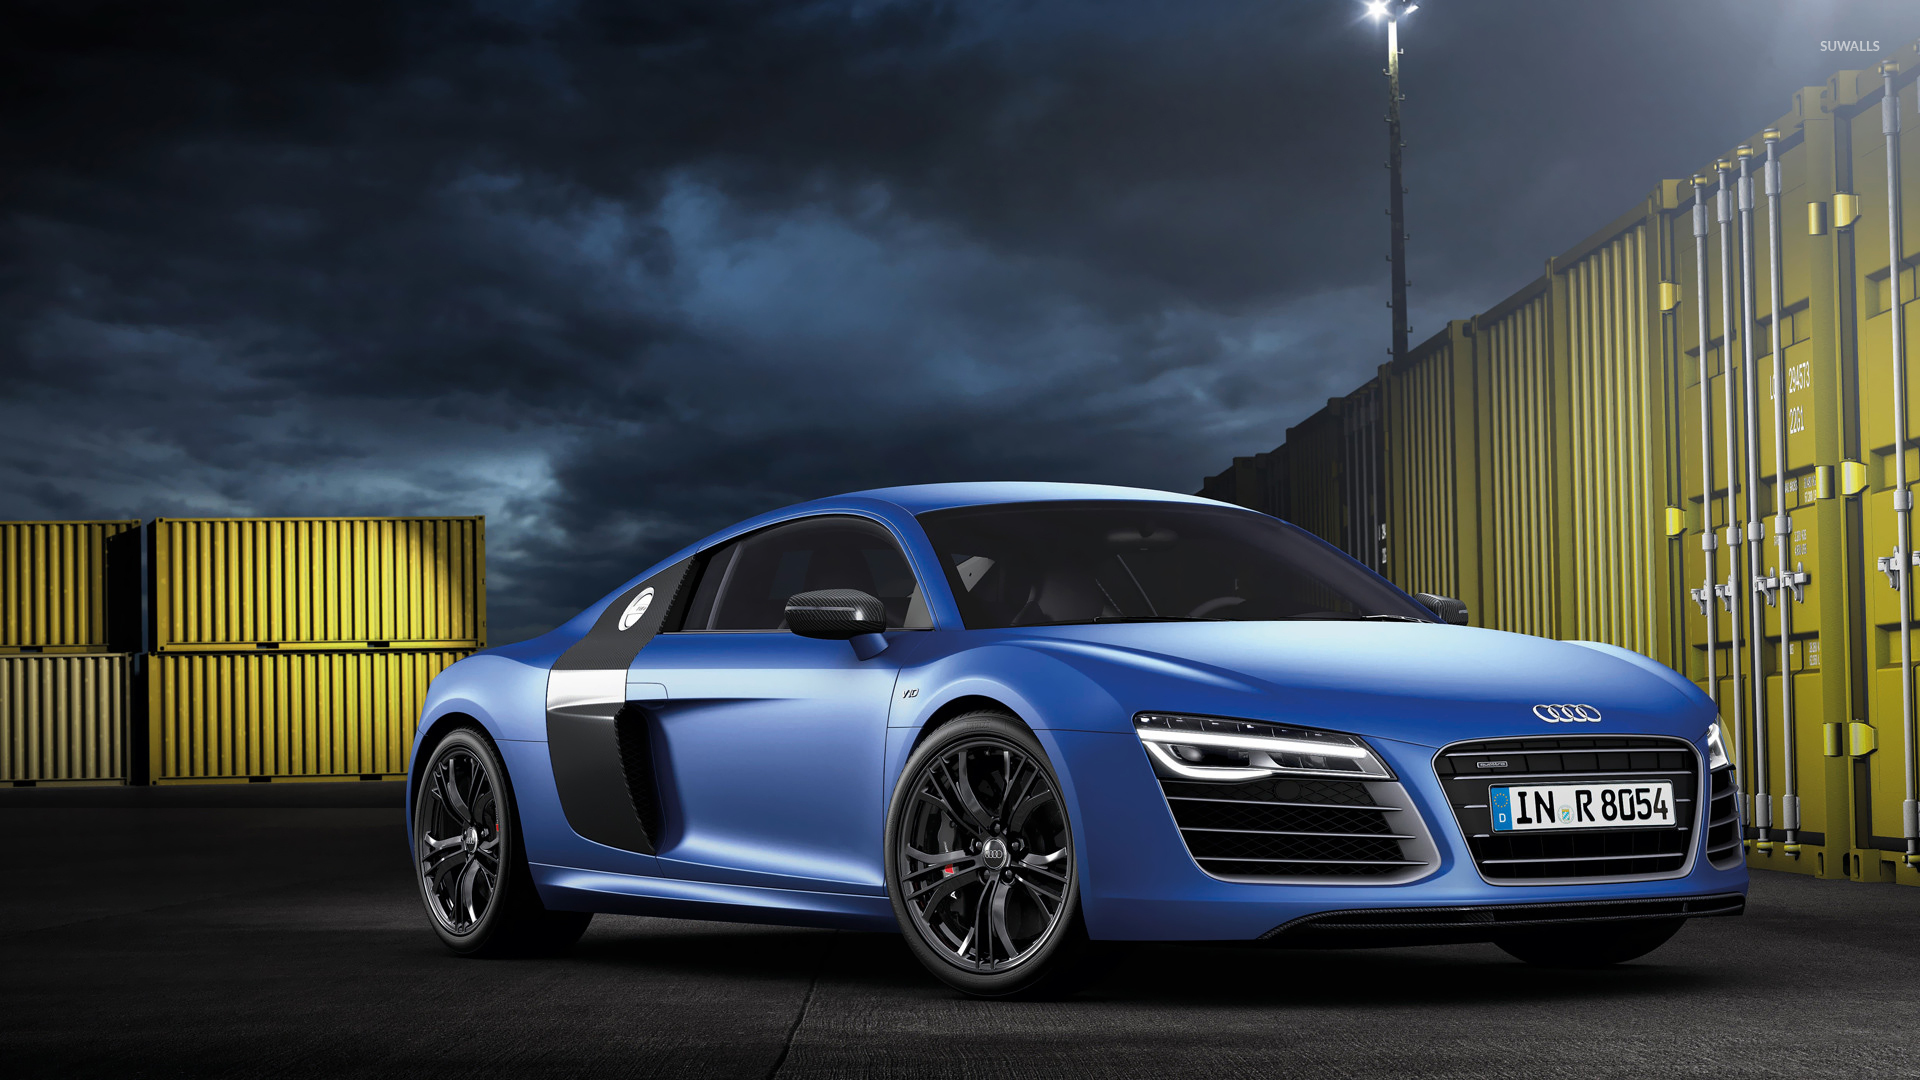 2013 blue audi r8 v10 plus wallpaper car wallpapers 52411. Black Bedroom Furniture Sets. Home Design Ideas